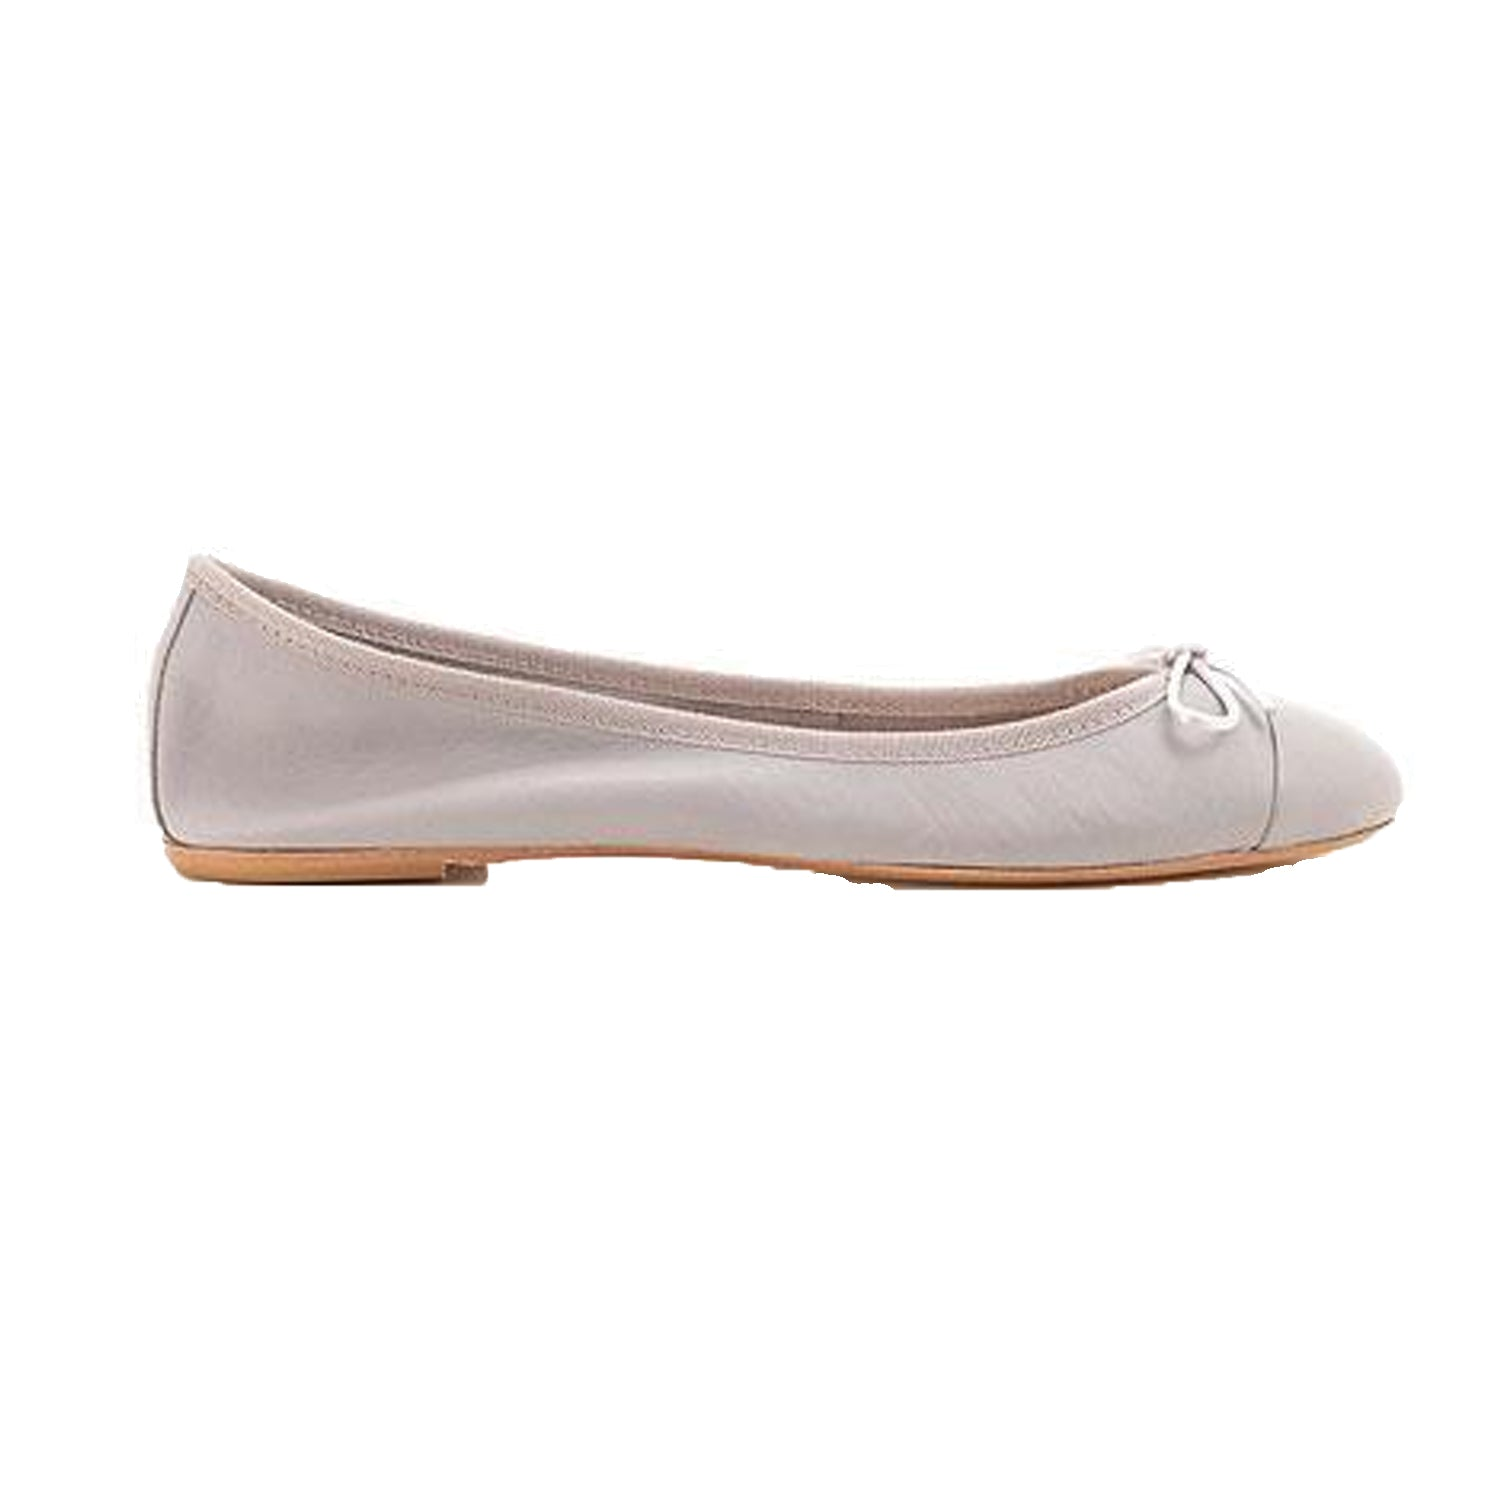 Anna Baiguera Annechic Ballerina Flat 36 Ash Muse Boutique Outlet